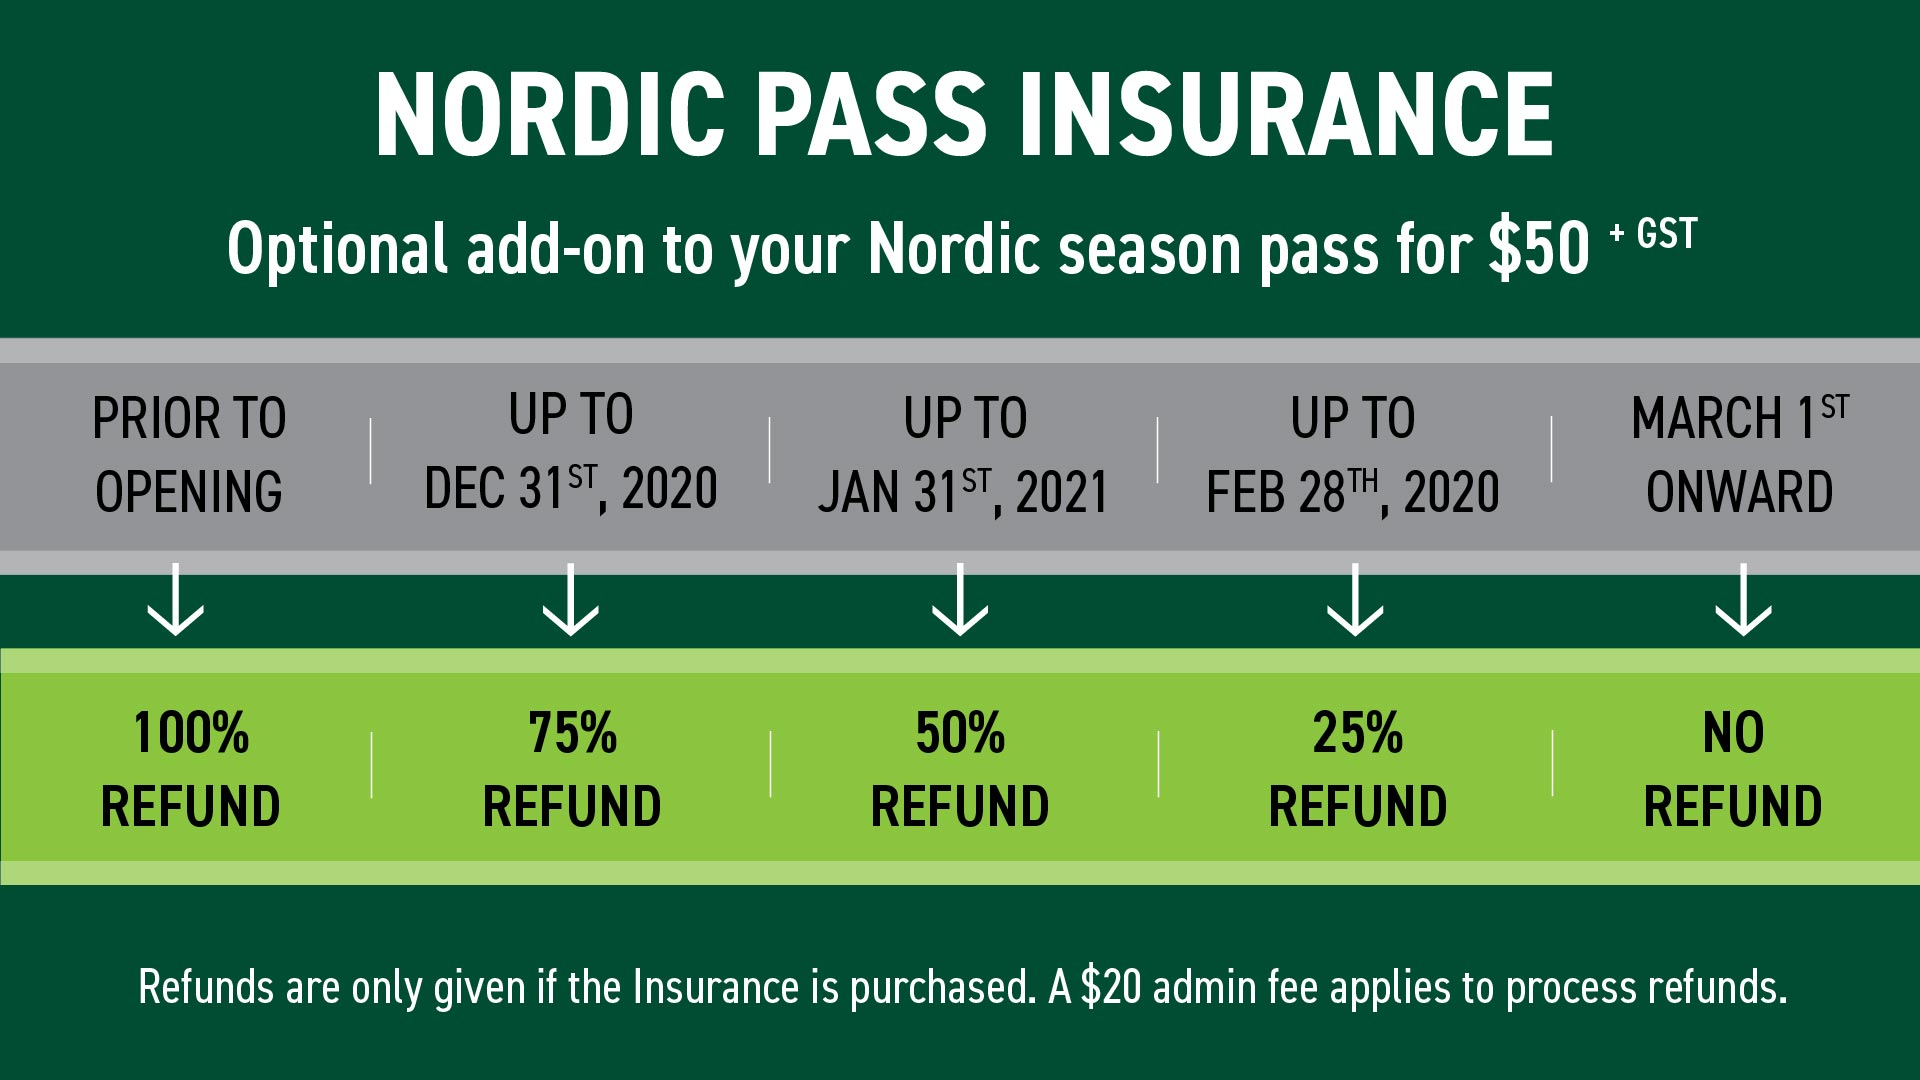 nordic-pass-refundable-insurance-2020.21-01.jpg